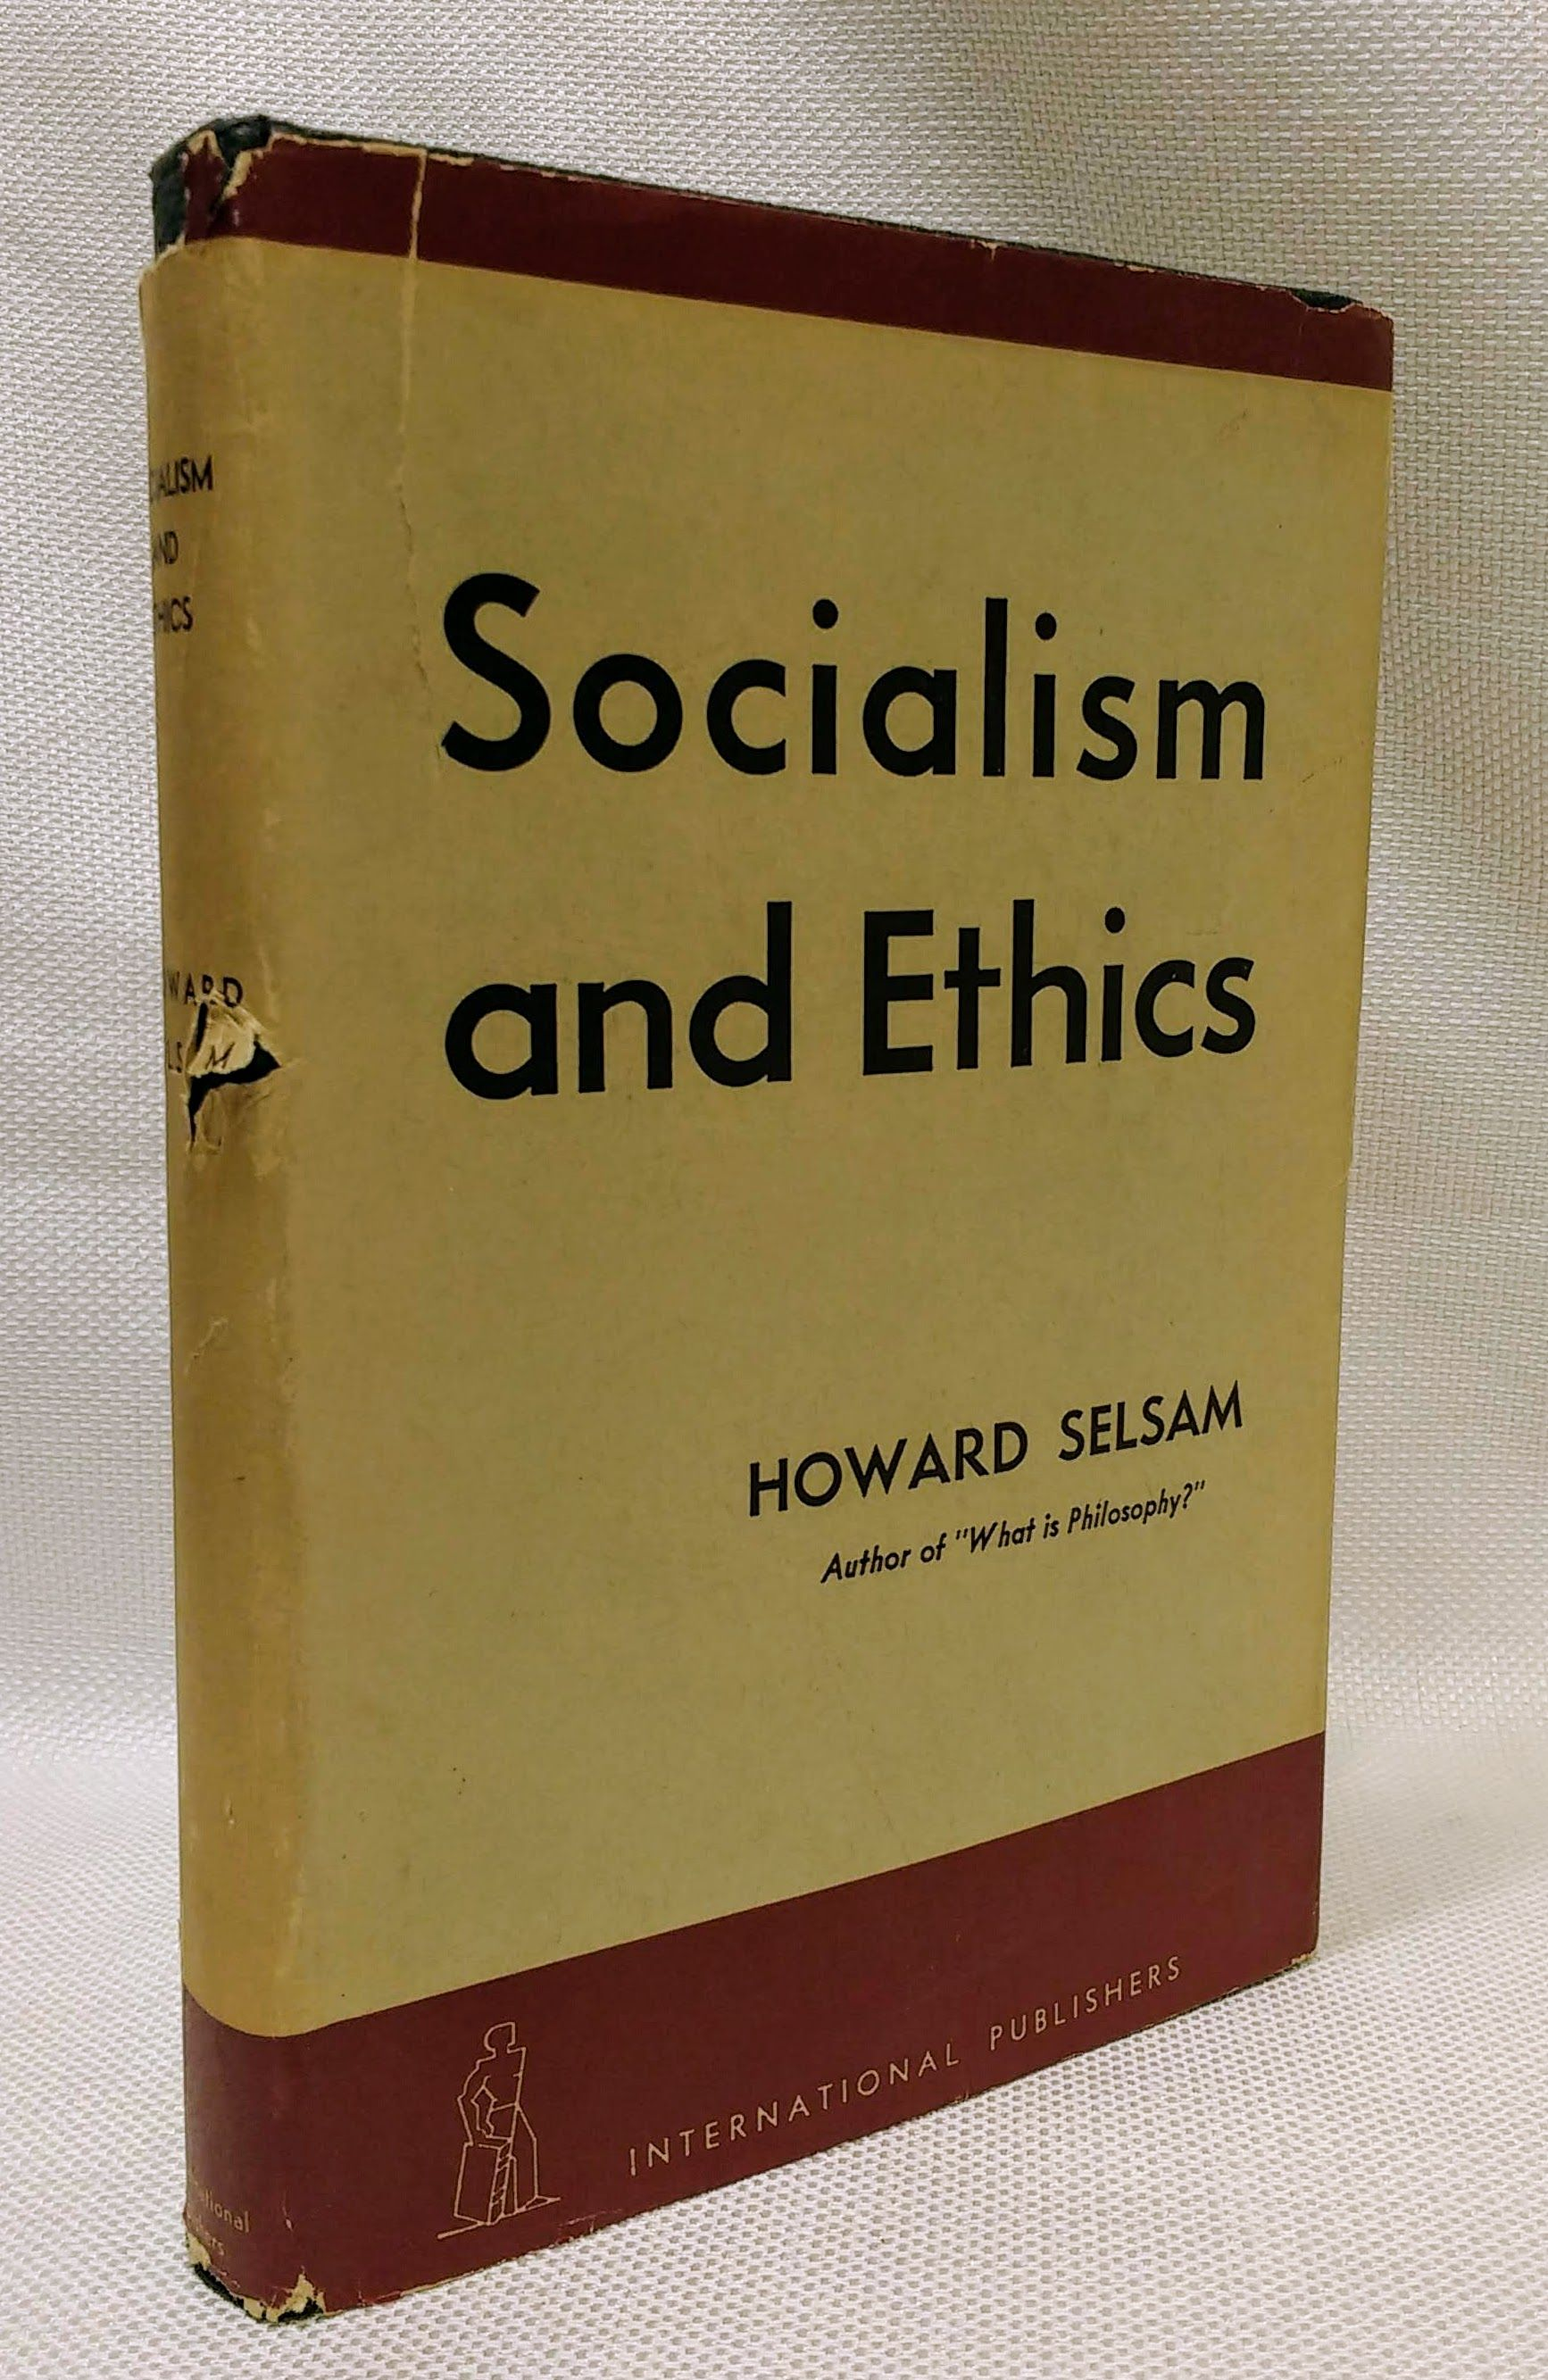 Socialism and Ethics, Howard Selsam